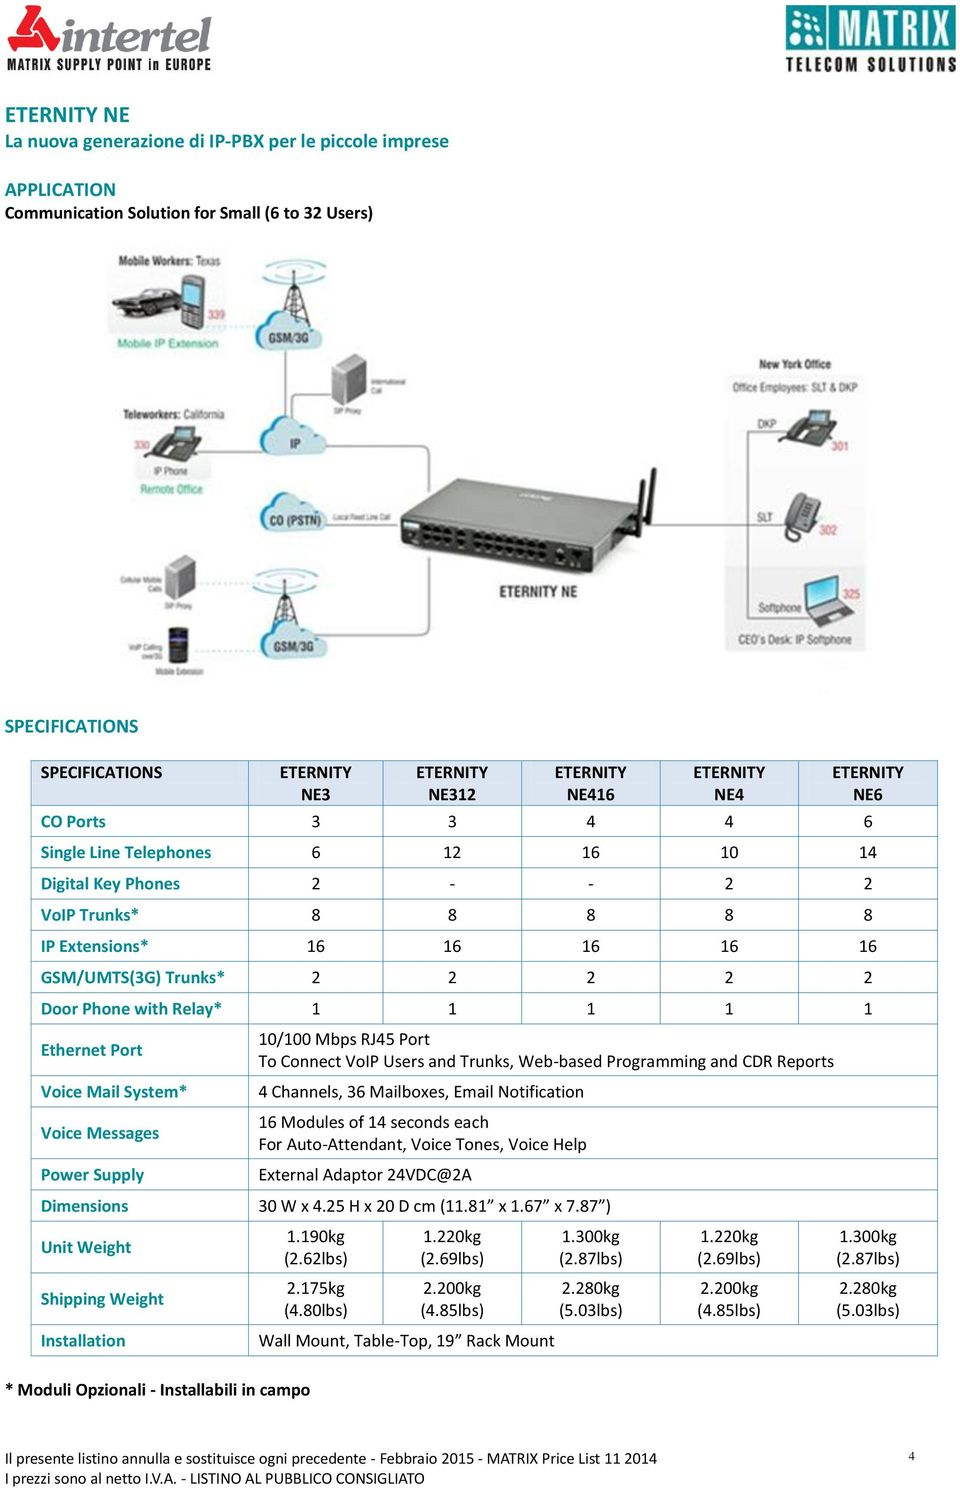 Port To Connect VoIP Users and Trunks, Web-based Programming and CDR Reports 4 Channels, 36 Mailboxes, Email Notification 16 Modules of 14 seconds each For Auto-Attendant, Voice Tones, Voice Help